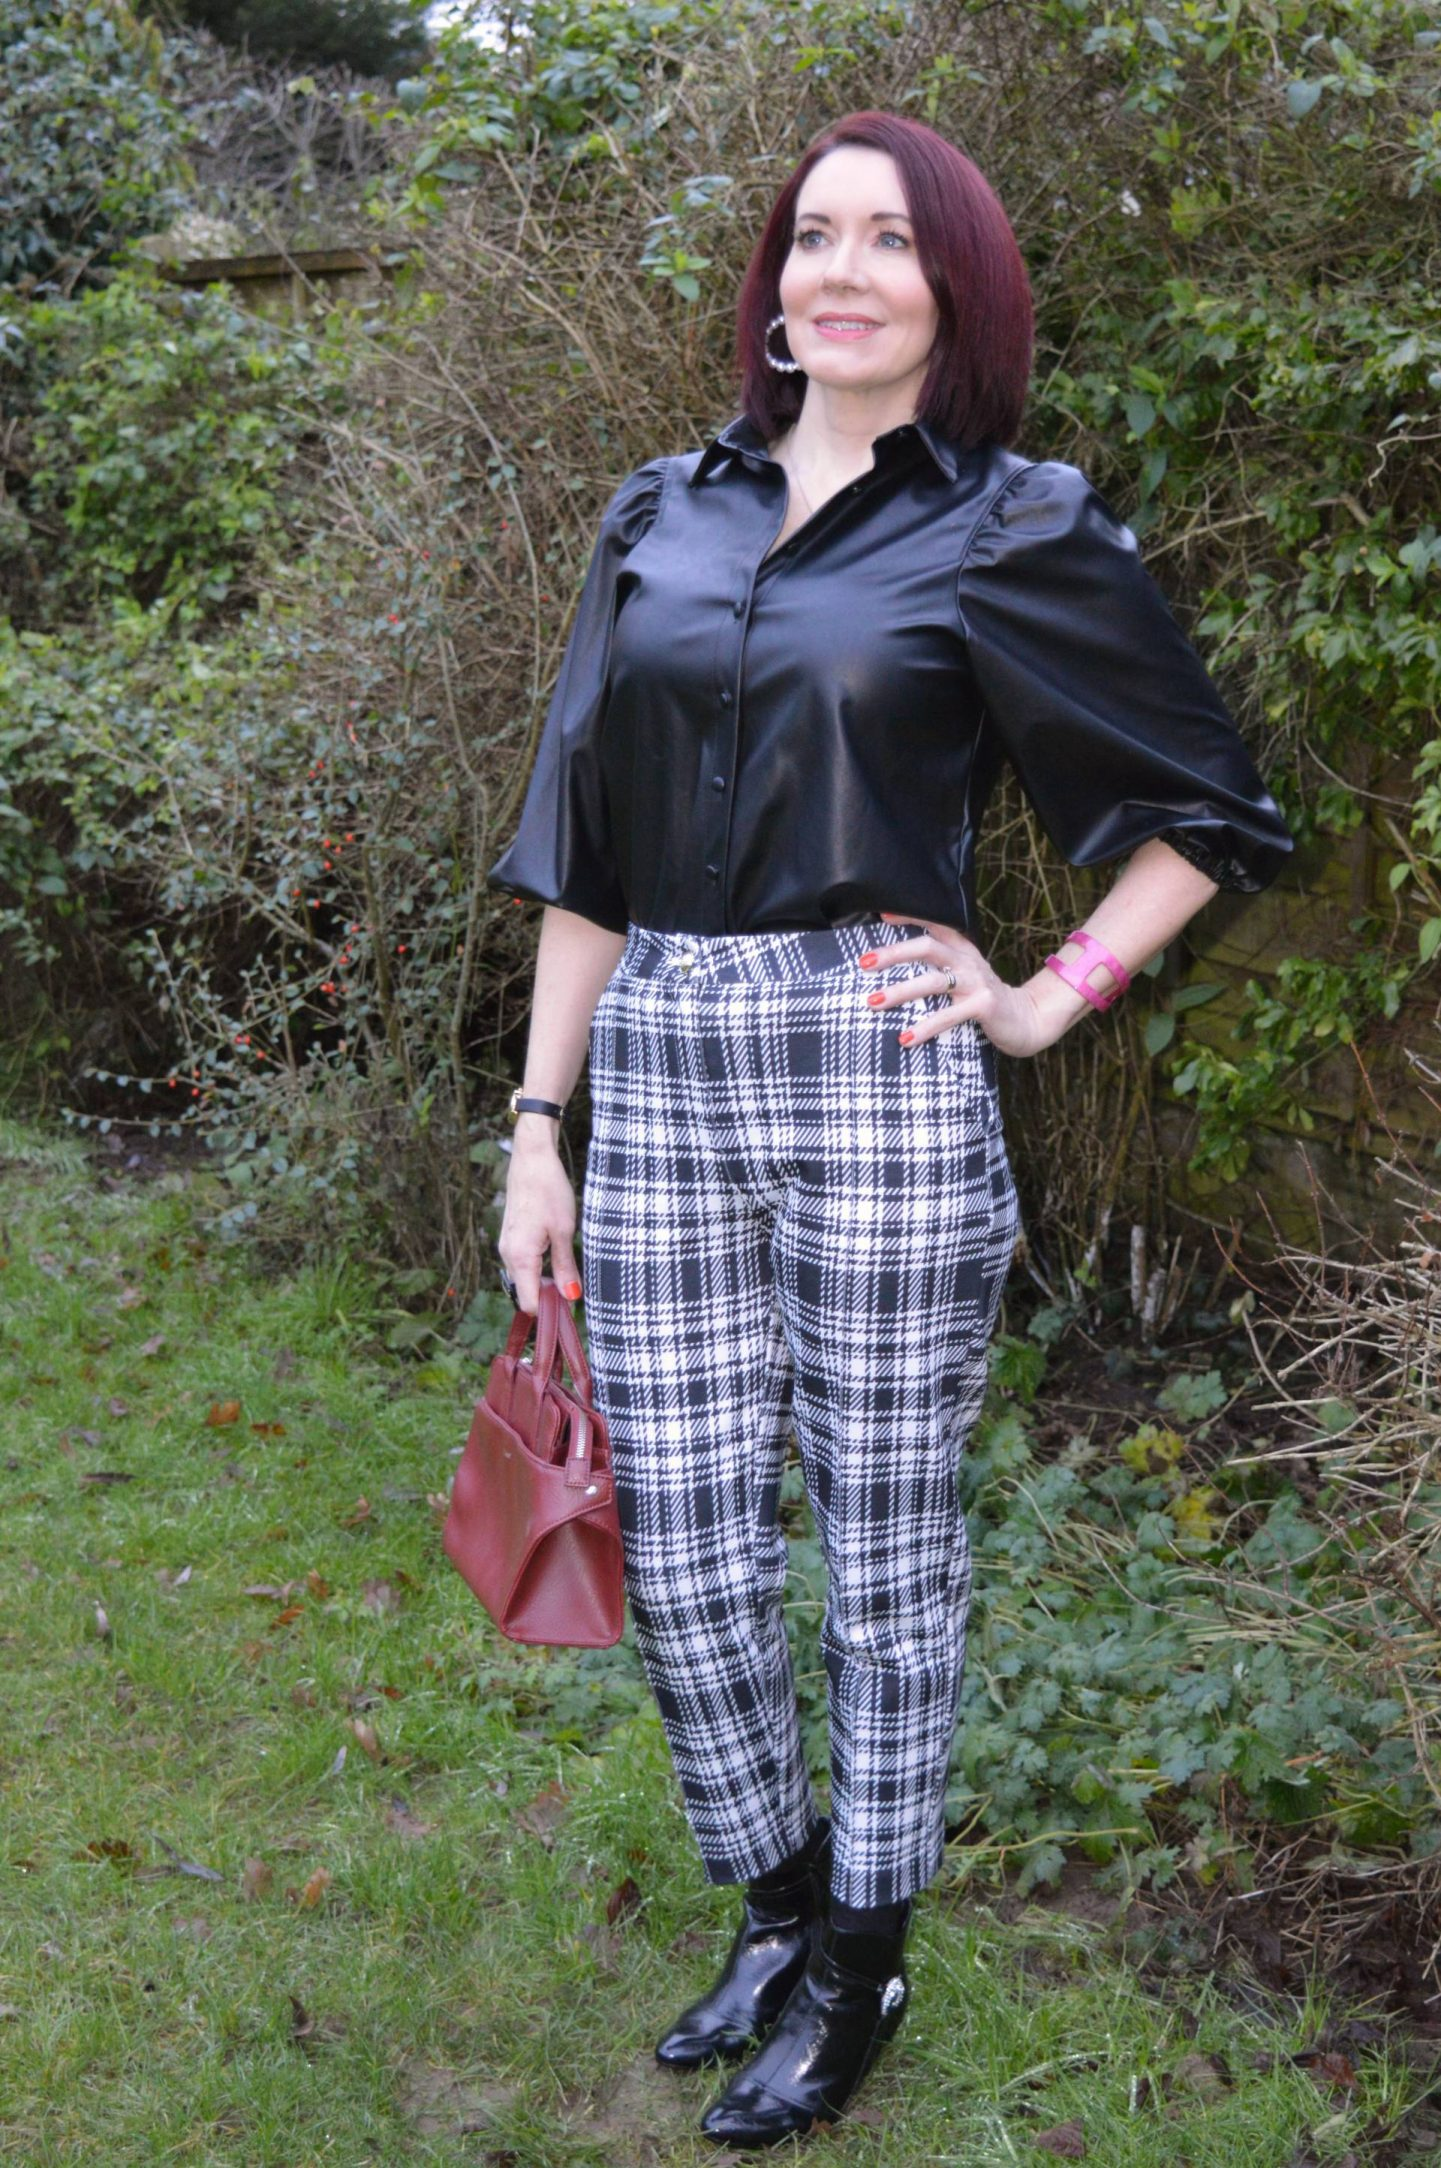 Styling Leather and Pleather - January's Thrifty Six Collaboration, New Look faux leather shirt, Matt and Nat maroon bag, River Island black and white check trousers